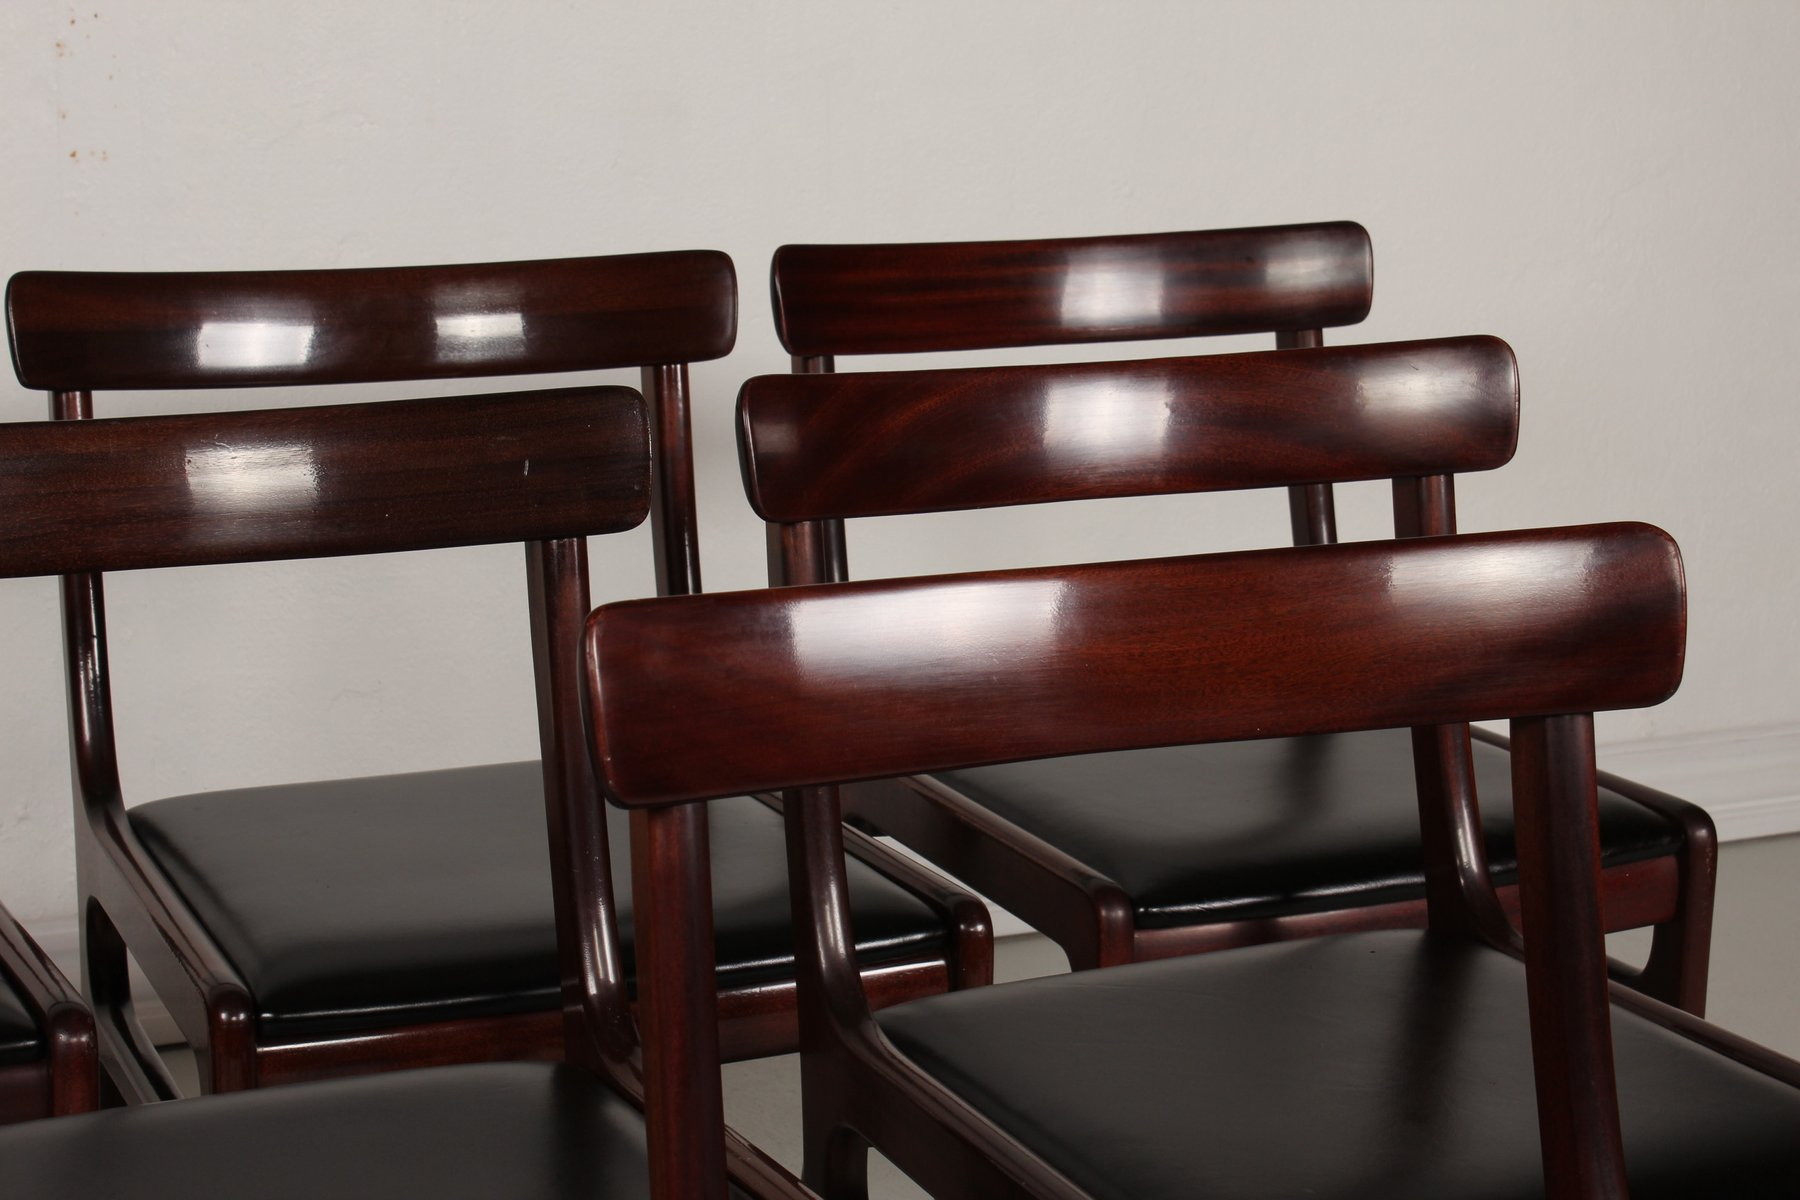 Vintage Danish Rungstedlund Mahogany Leather Chairs By